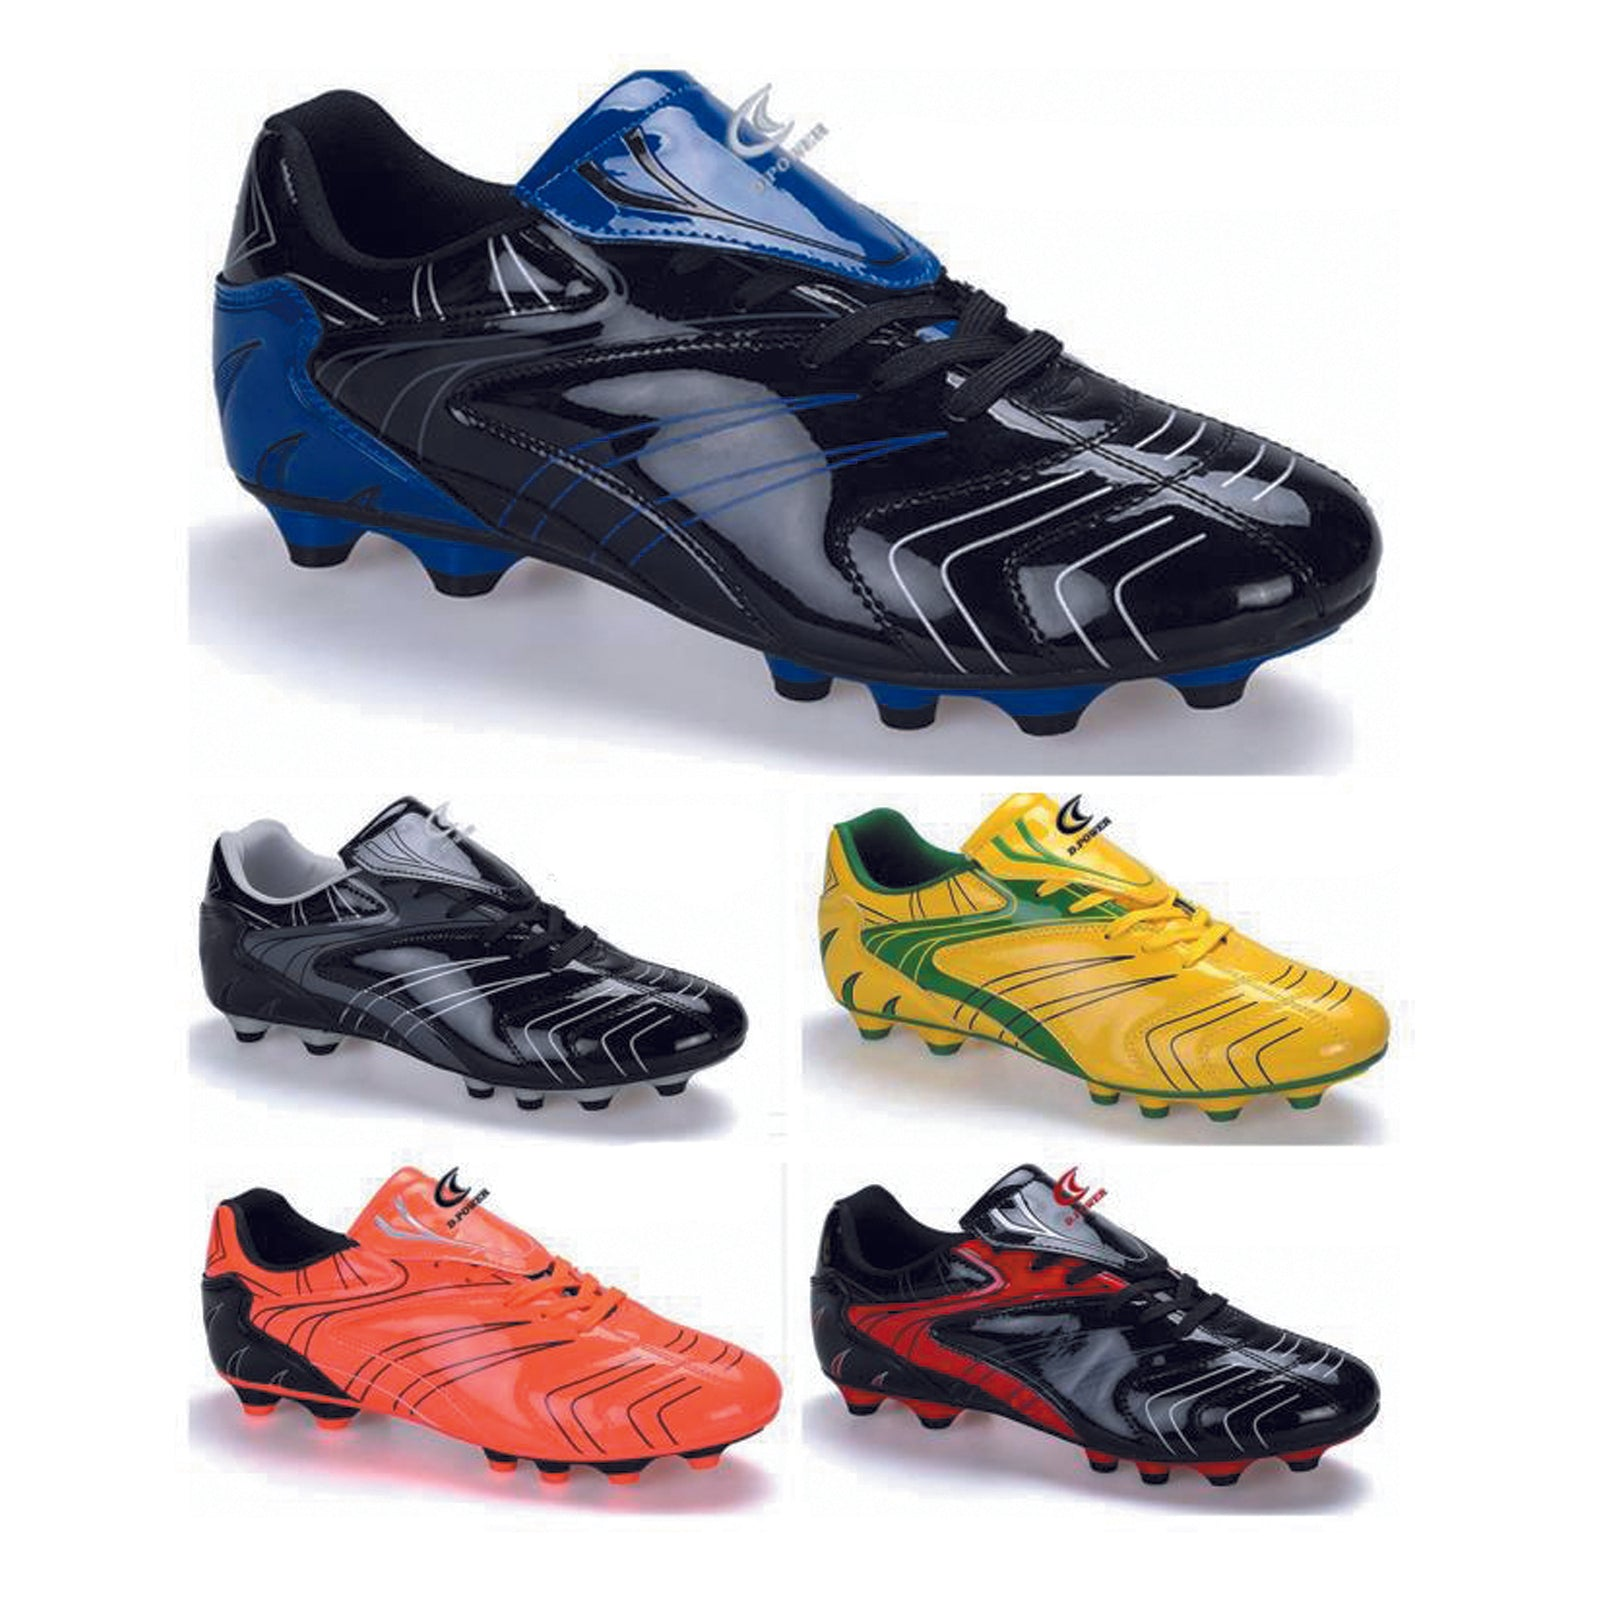 Wholesale Men's Shoes Lace Up Soccer Sporty Metallic Johnny NCP87